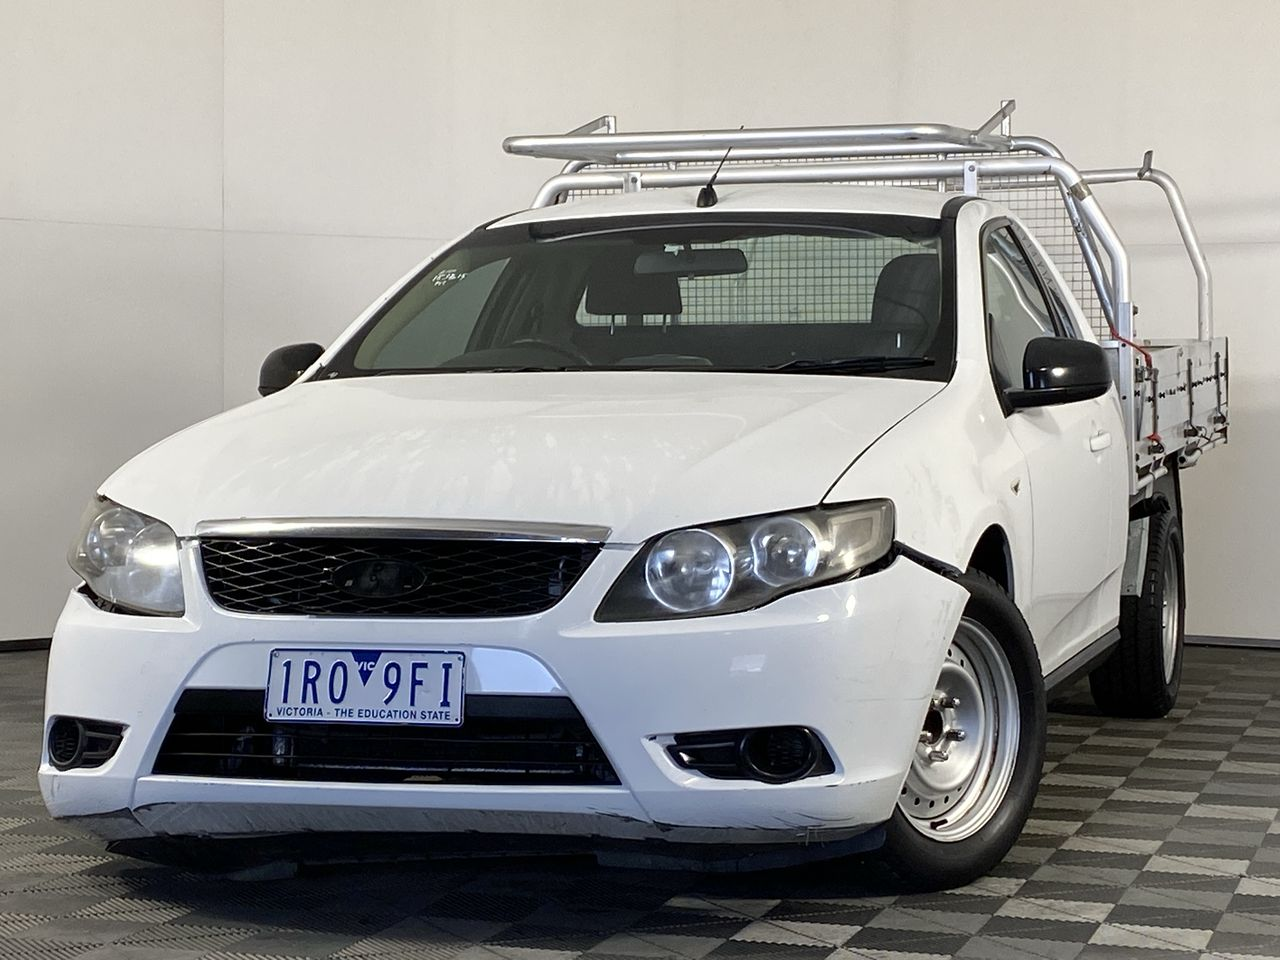 2009 Ford Falcon FG Automatic Cab Chassis